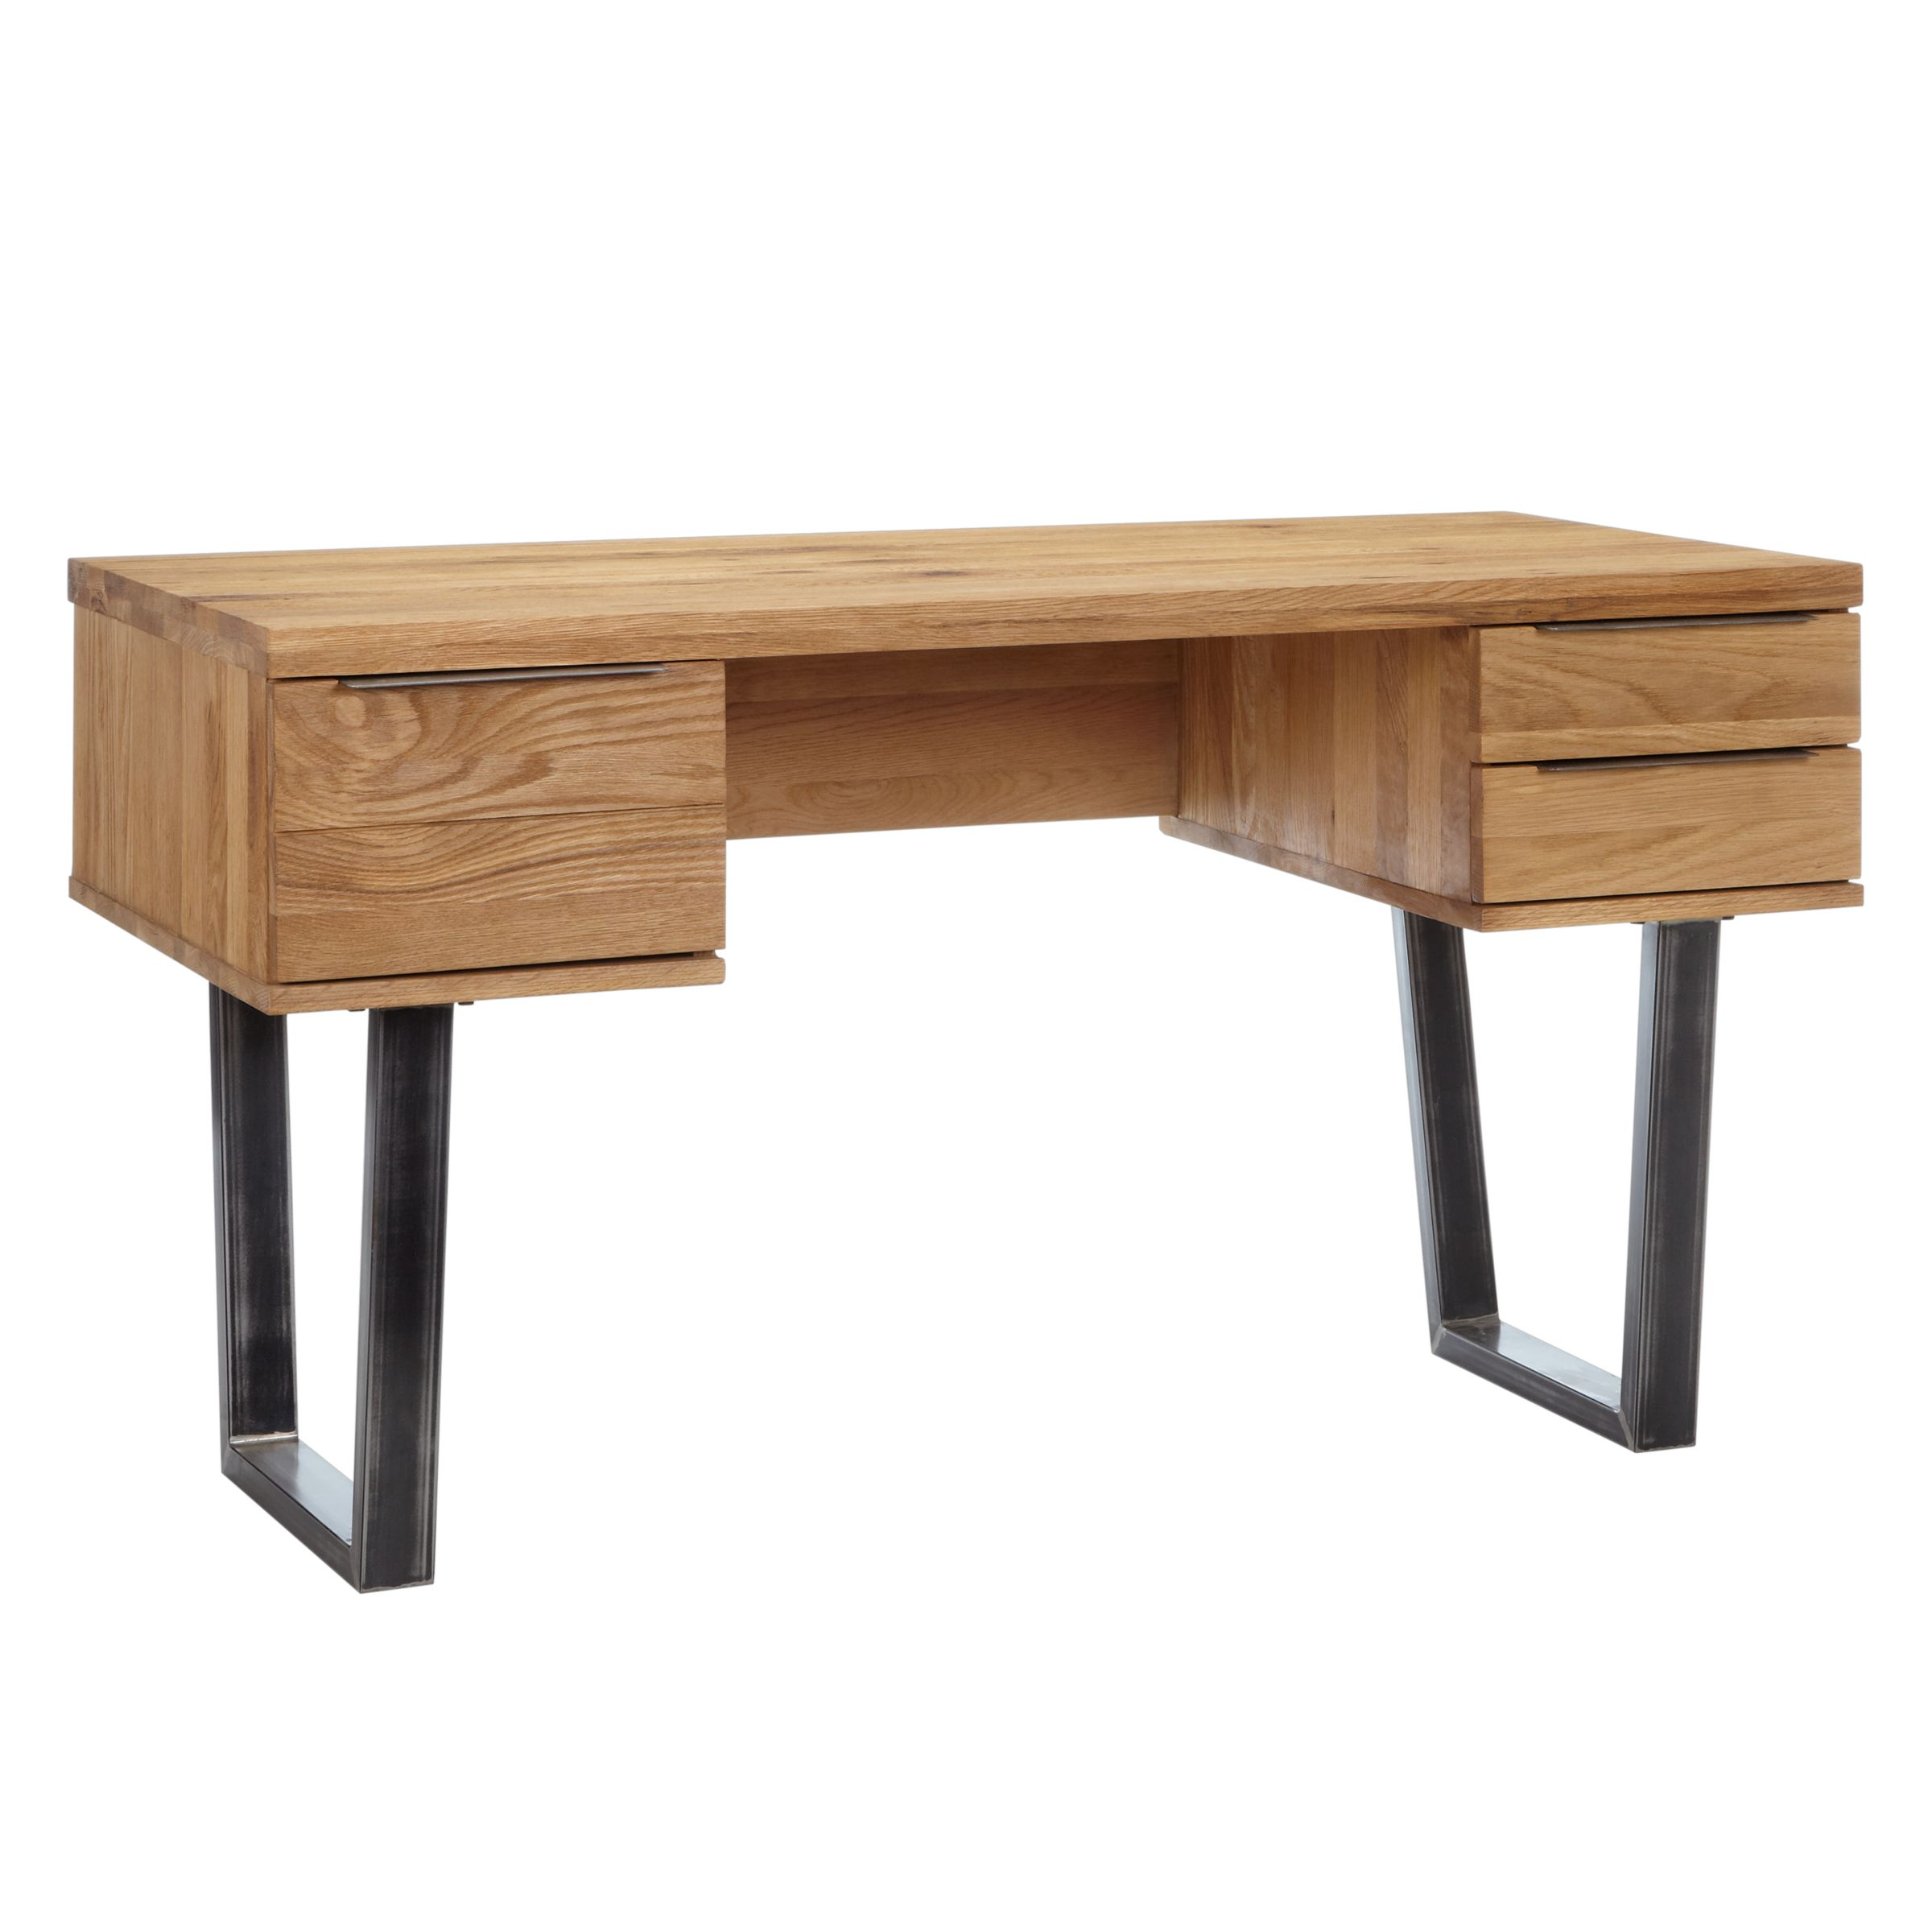 John lewis calia desk bluewater for John lewis chinese furniture